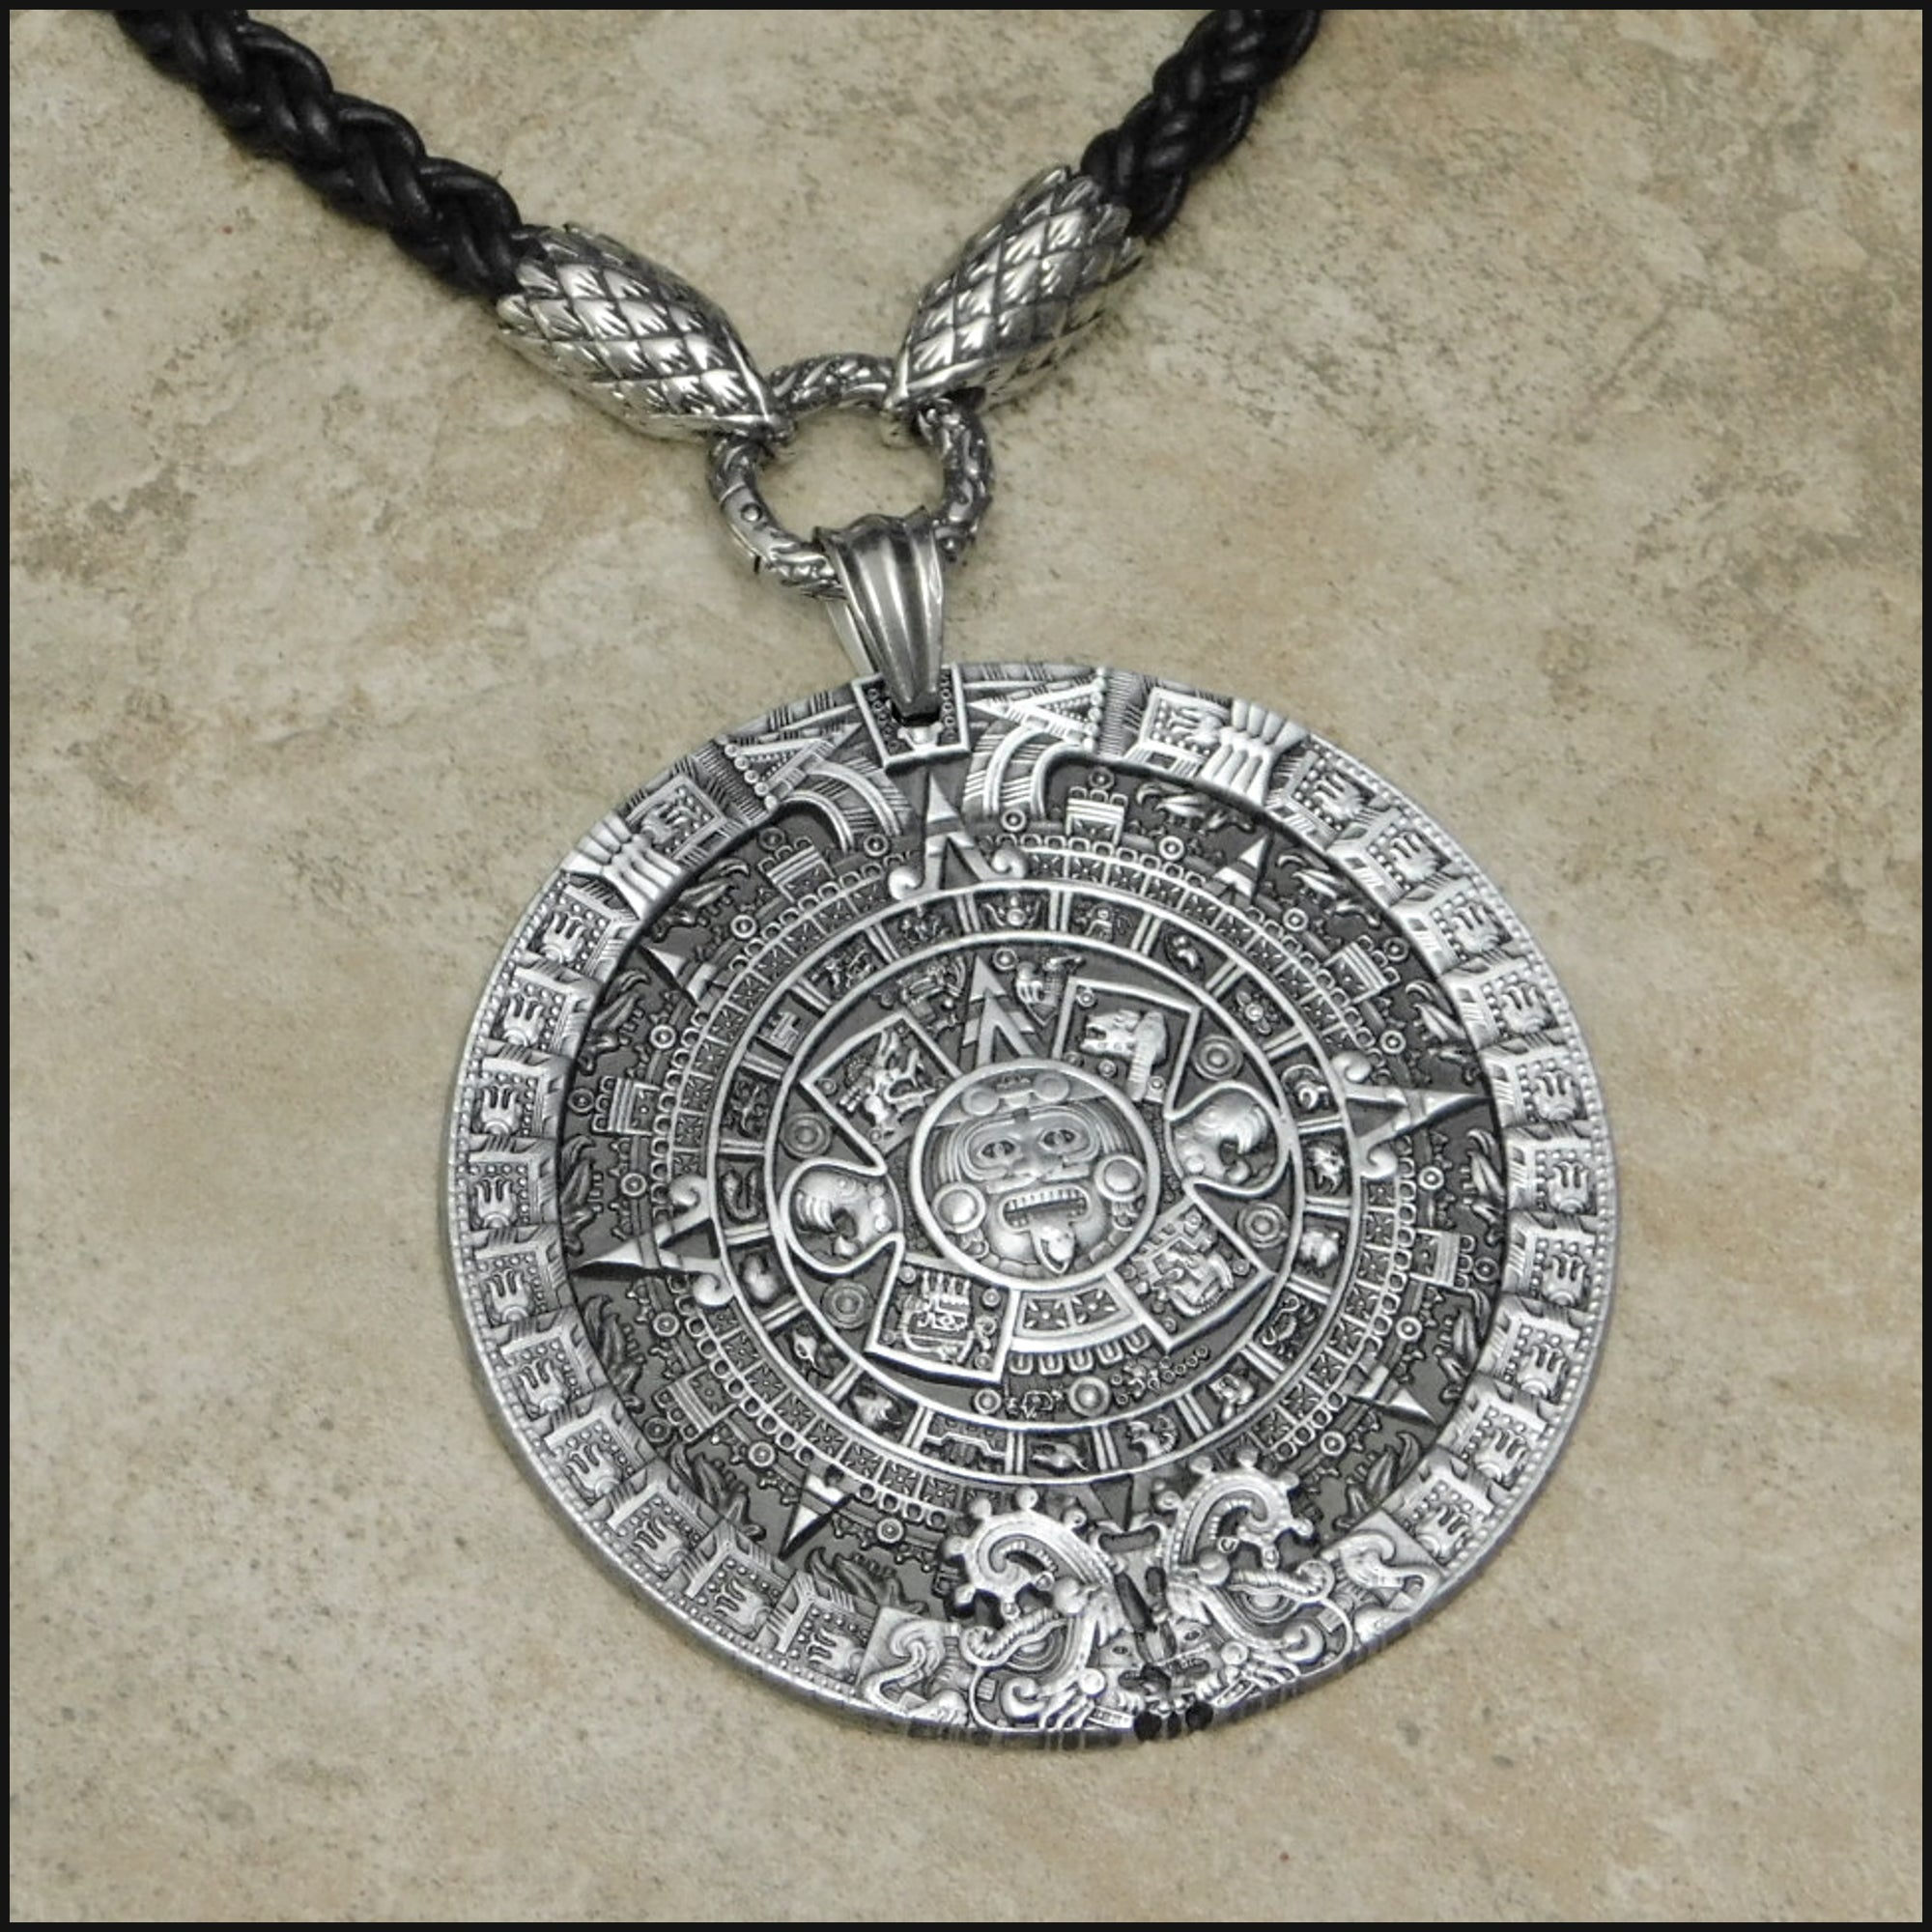 Large Aztec Calendar Medallion on Tribal Braid Leather Necklace With Serpent Scale Ends